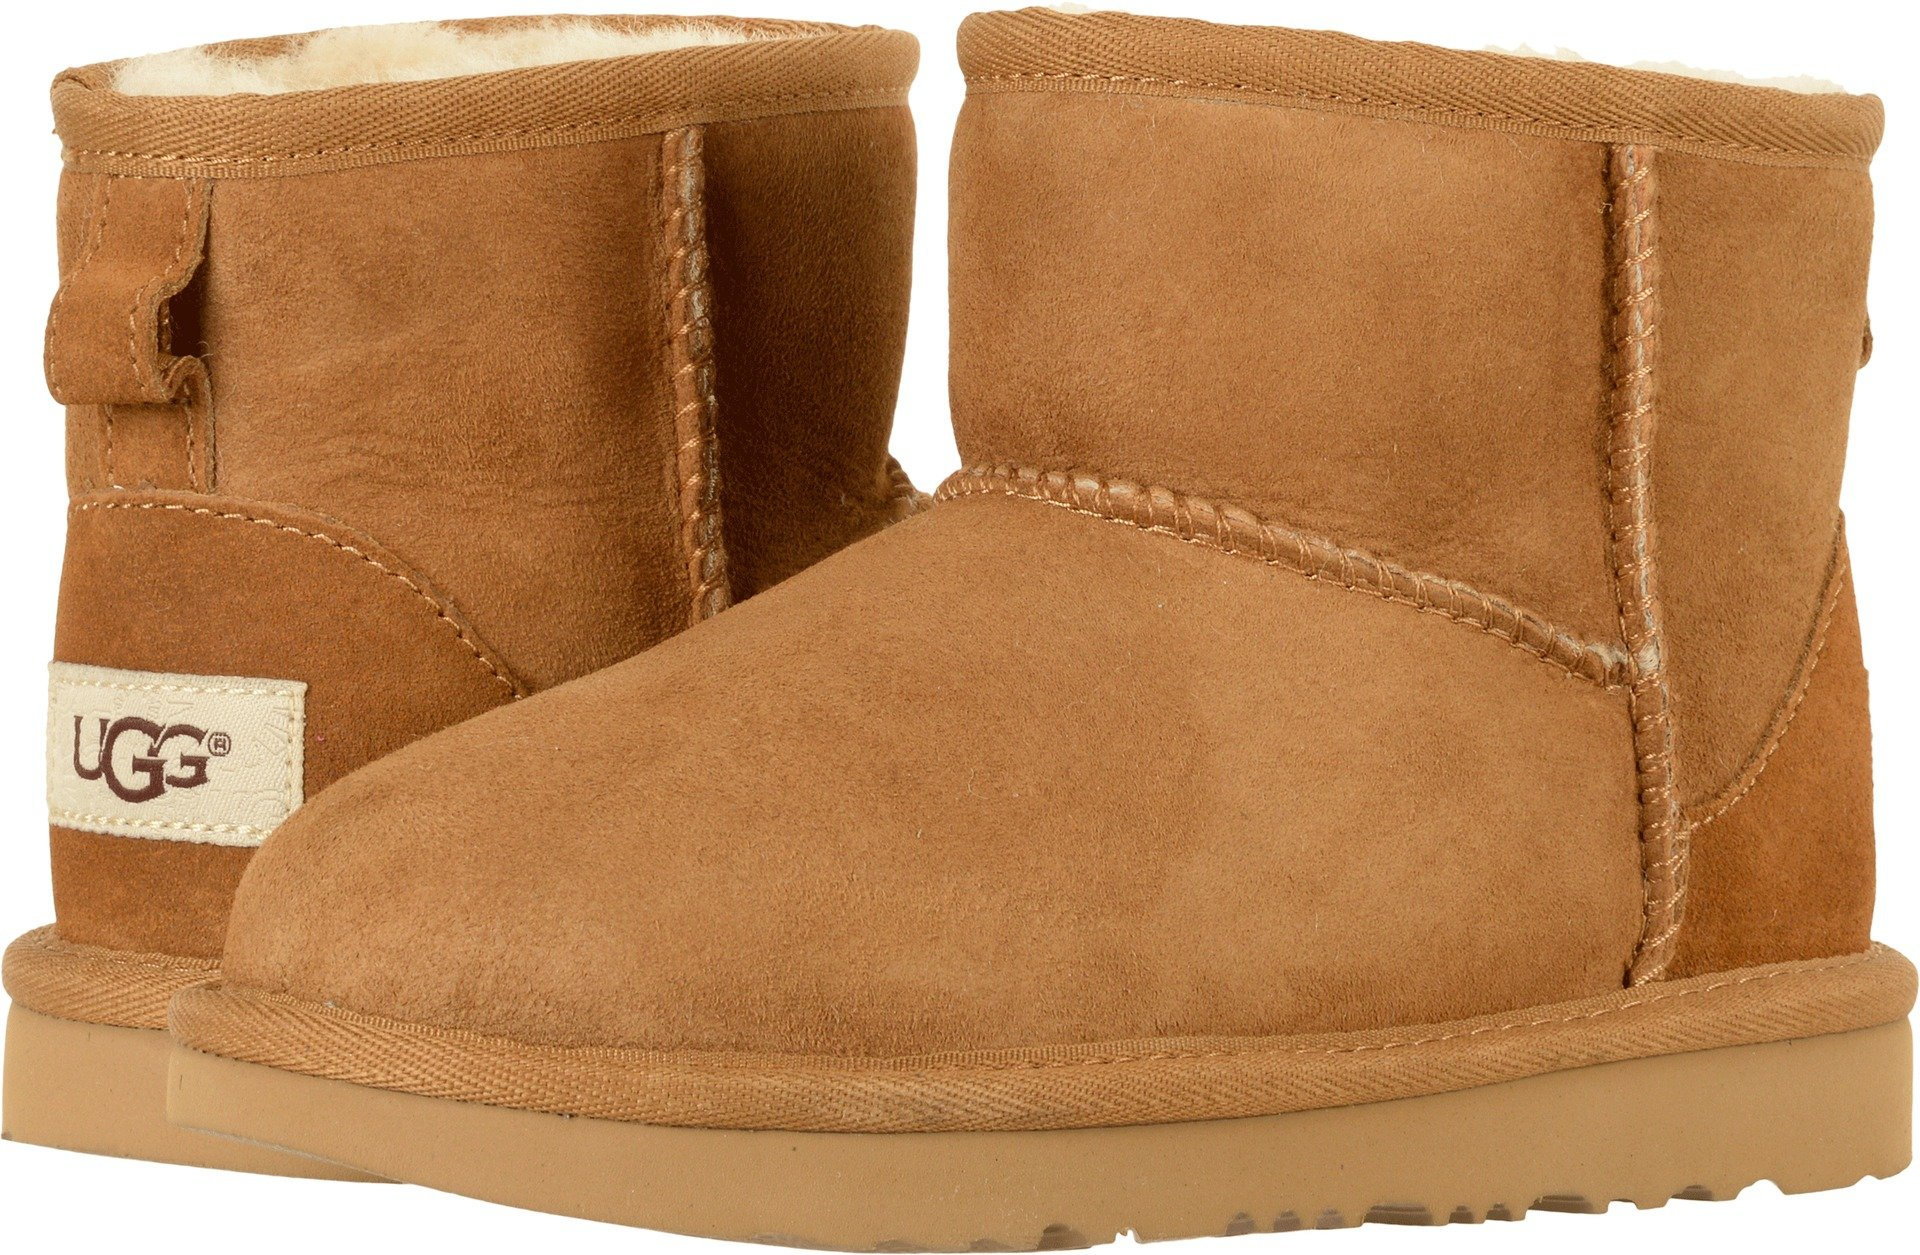 UGG Kids K Classic Mini II Pull-On Boot, Chestnut, 6 M US Big Kid by UGG